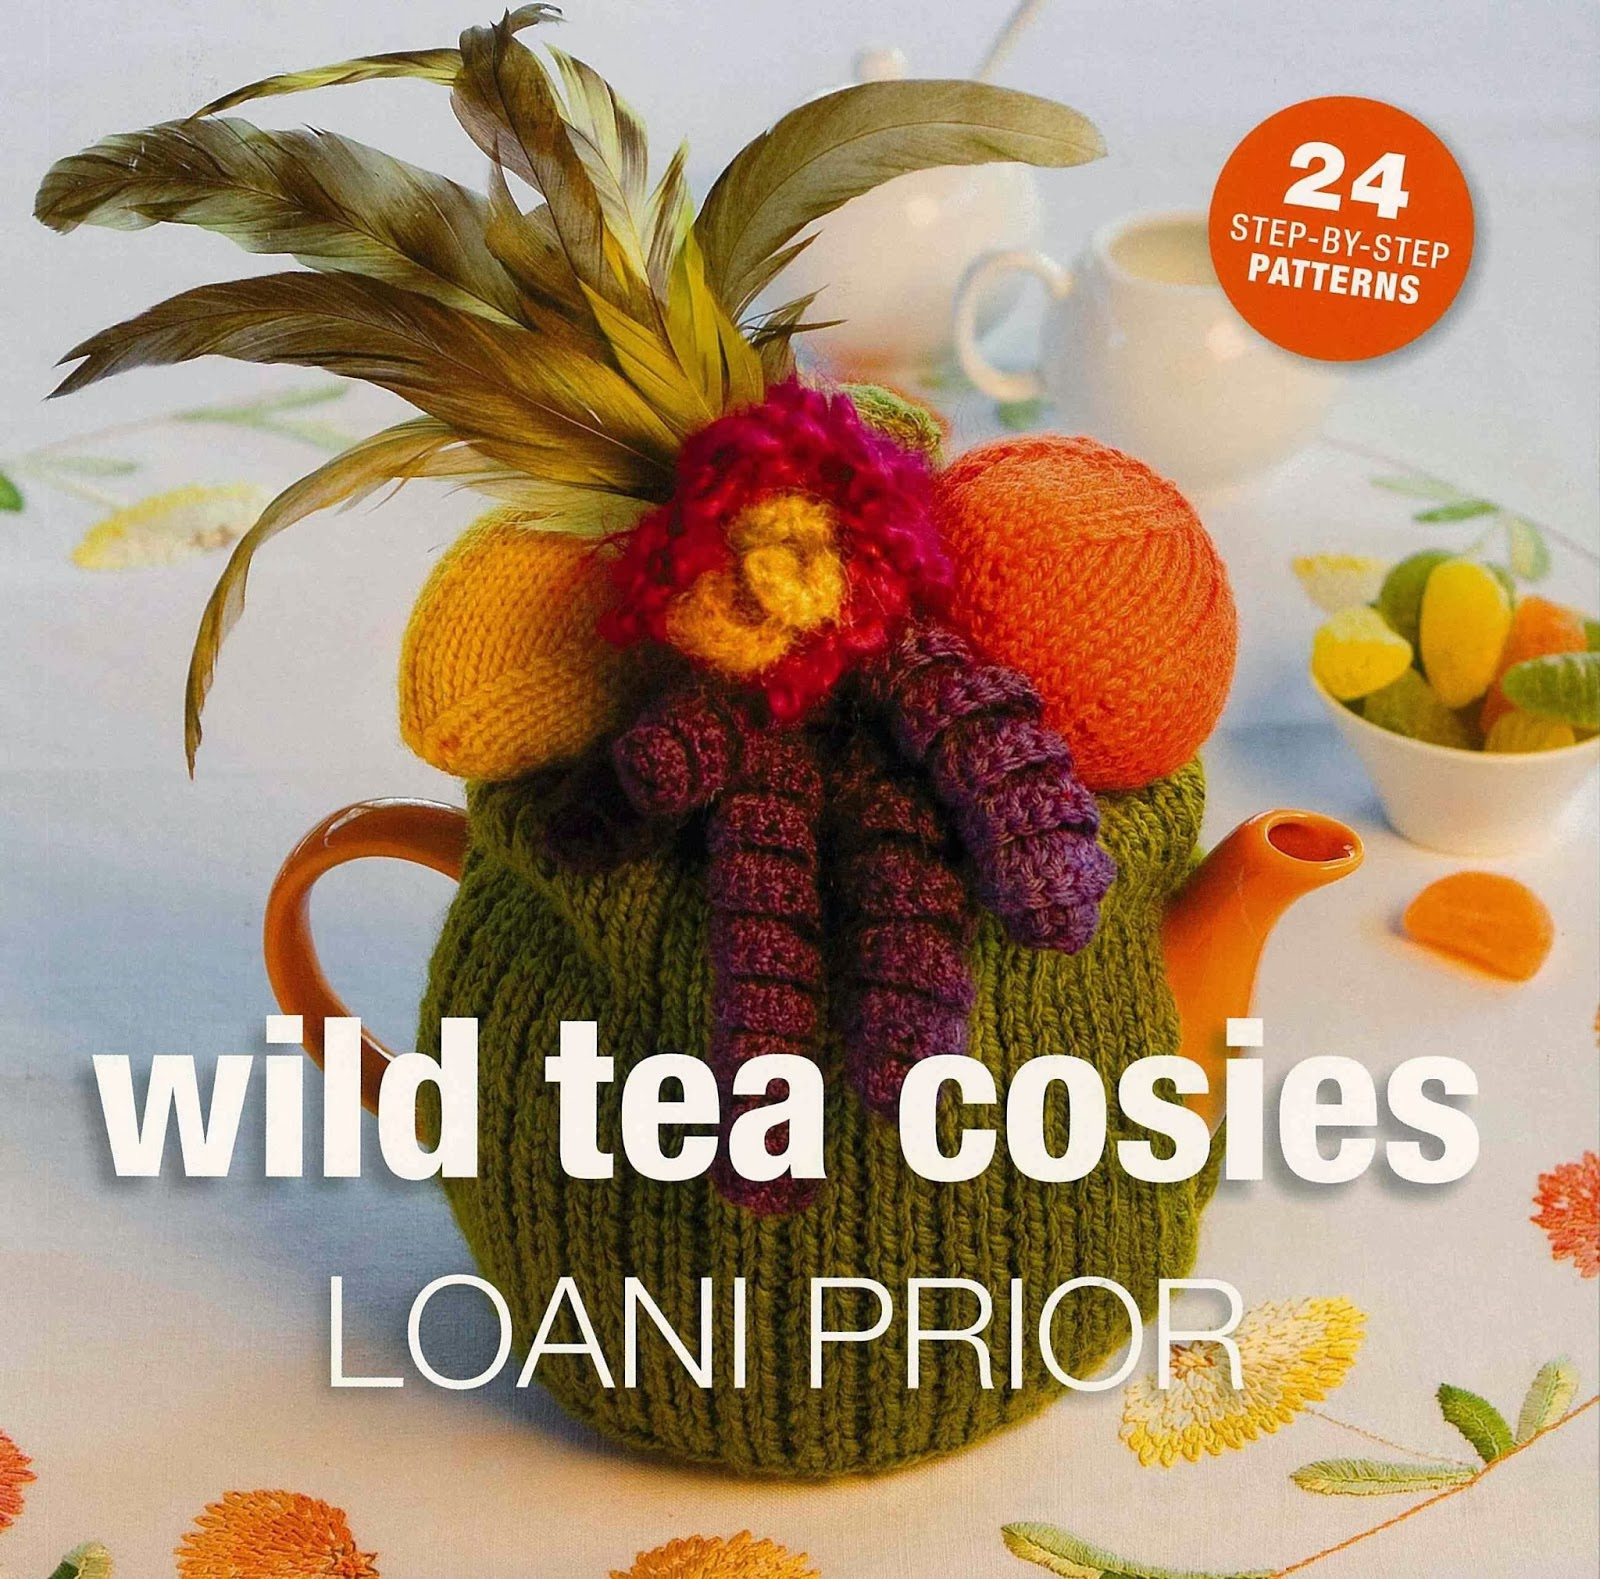 http://www.amazon.co.uk/Wild-Tea-Cosies-Step---step/dp/1844484181/ref=sr_1_4?s=books&ie=UTF8&qid=1391691557&sr=1-4&keywords=loani+prior